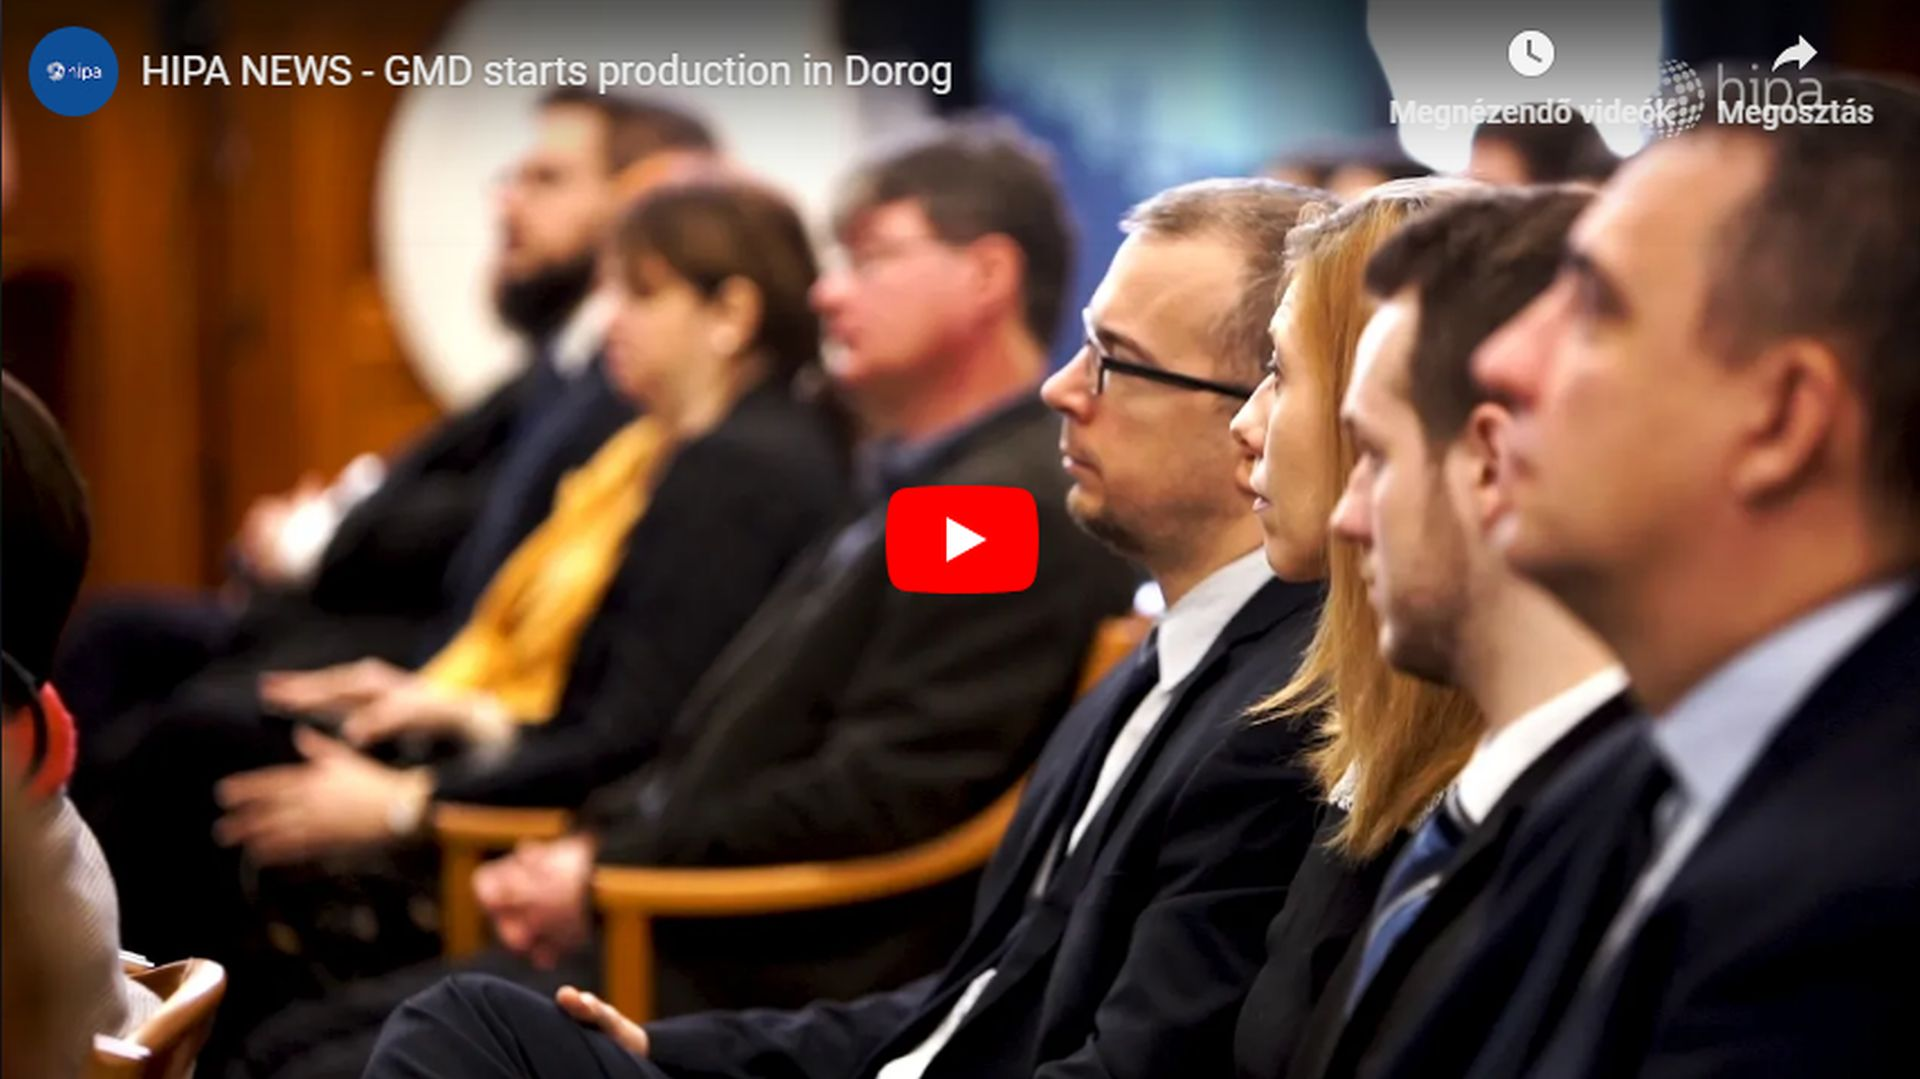 Manufacturing launched in the most modern European plant of the GMD Group in Dorog - VIDEO REPORT